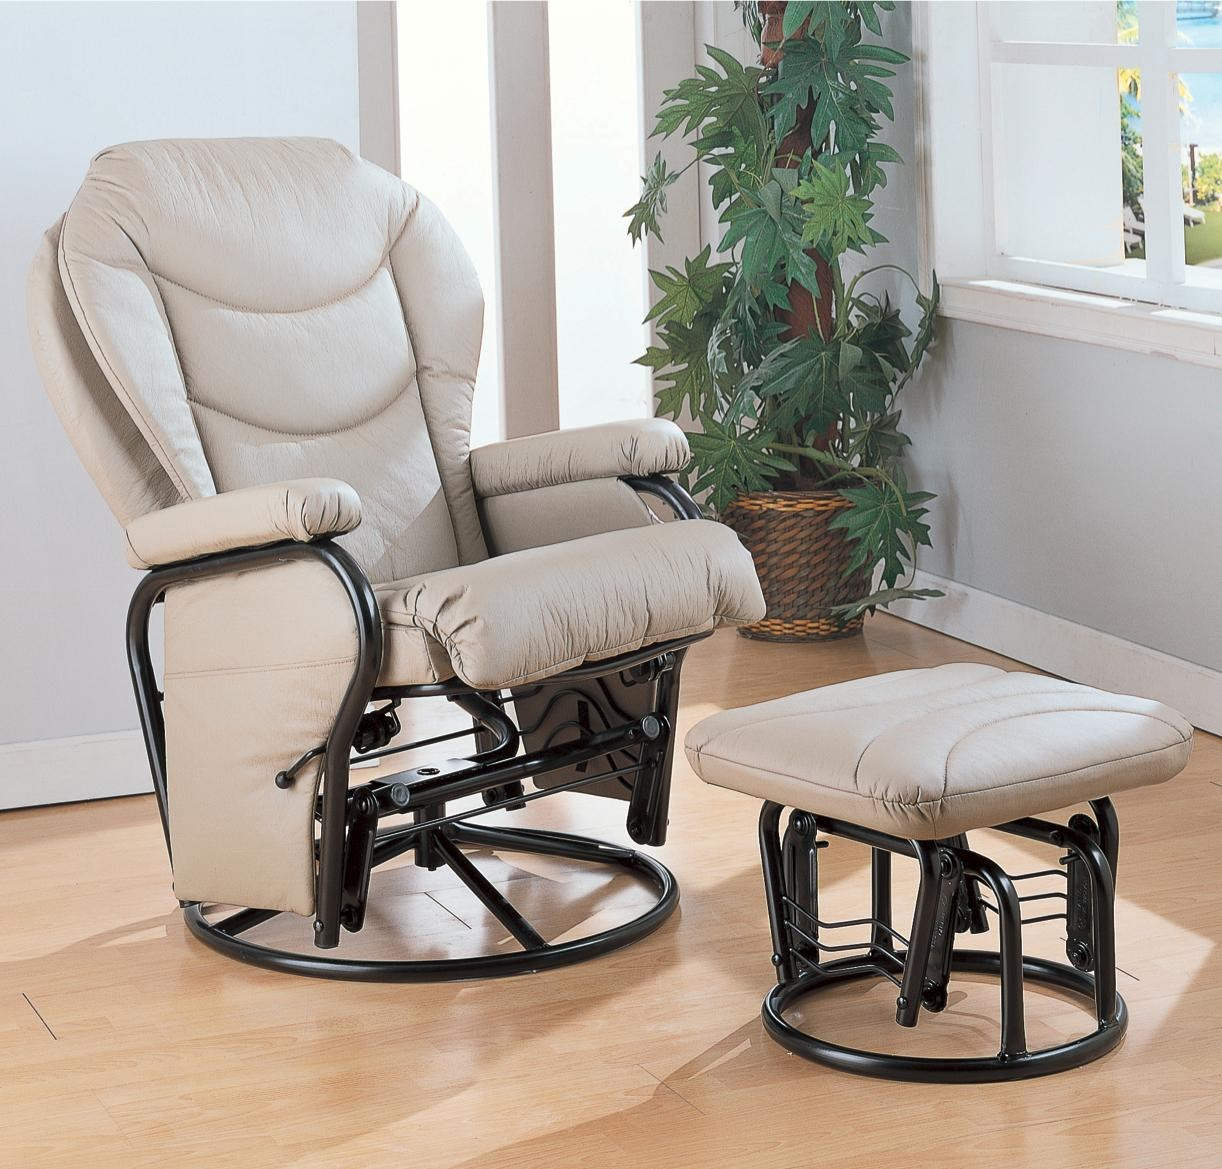 Coaster Recliners With Ottomans Glider Rocker With Round Base Ottoman